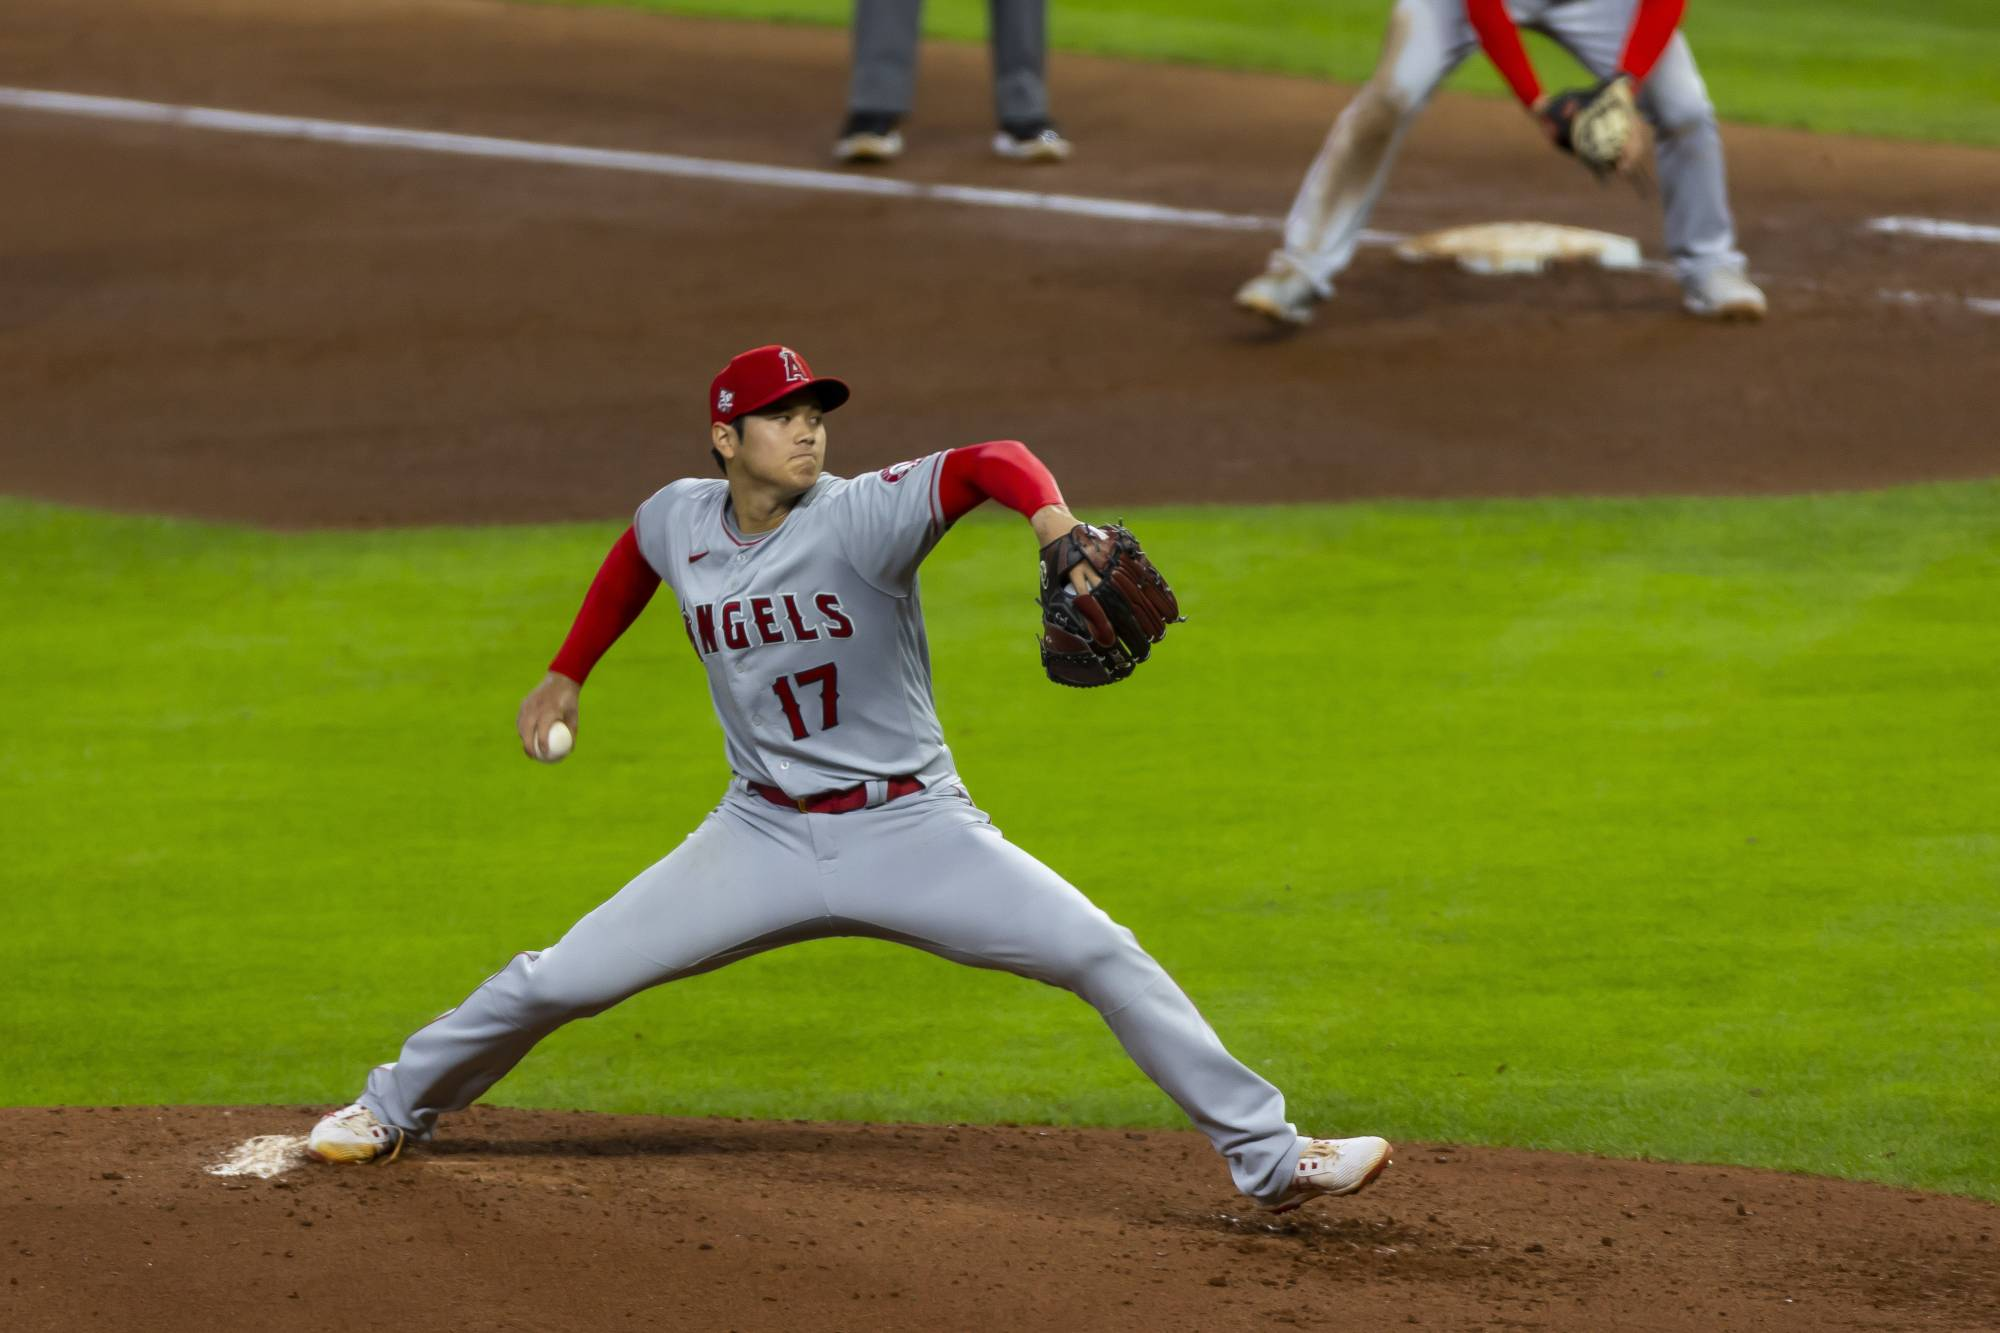 Angels pitcher Shohei Ohtani throws during a May 11 game against the Astros in Houston. | THE NEW YORK TIMES